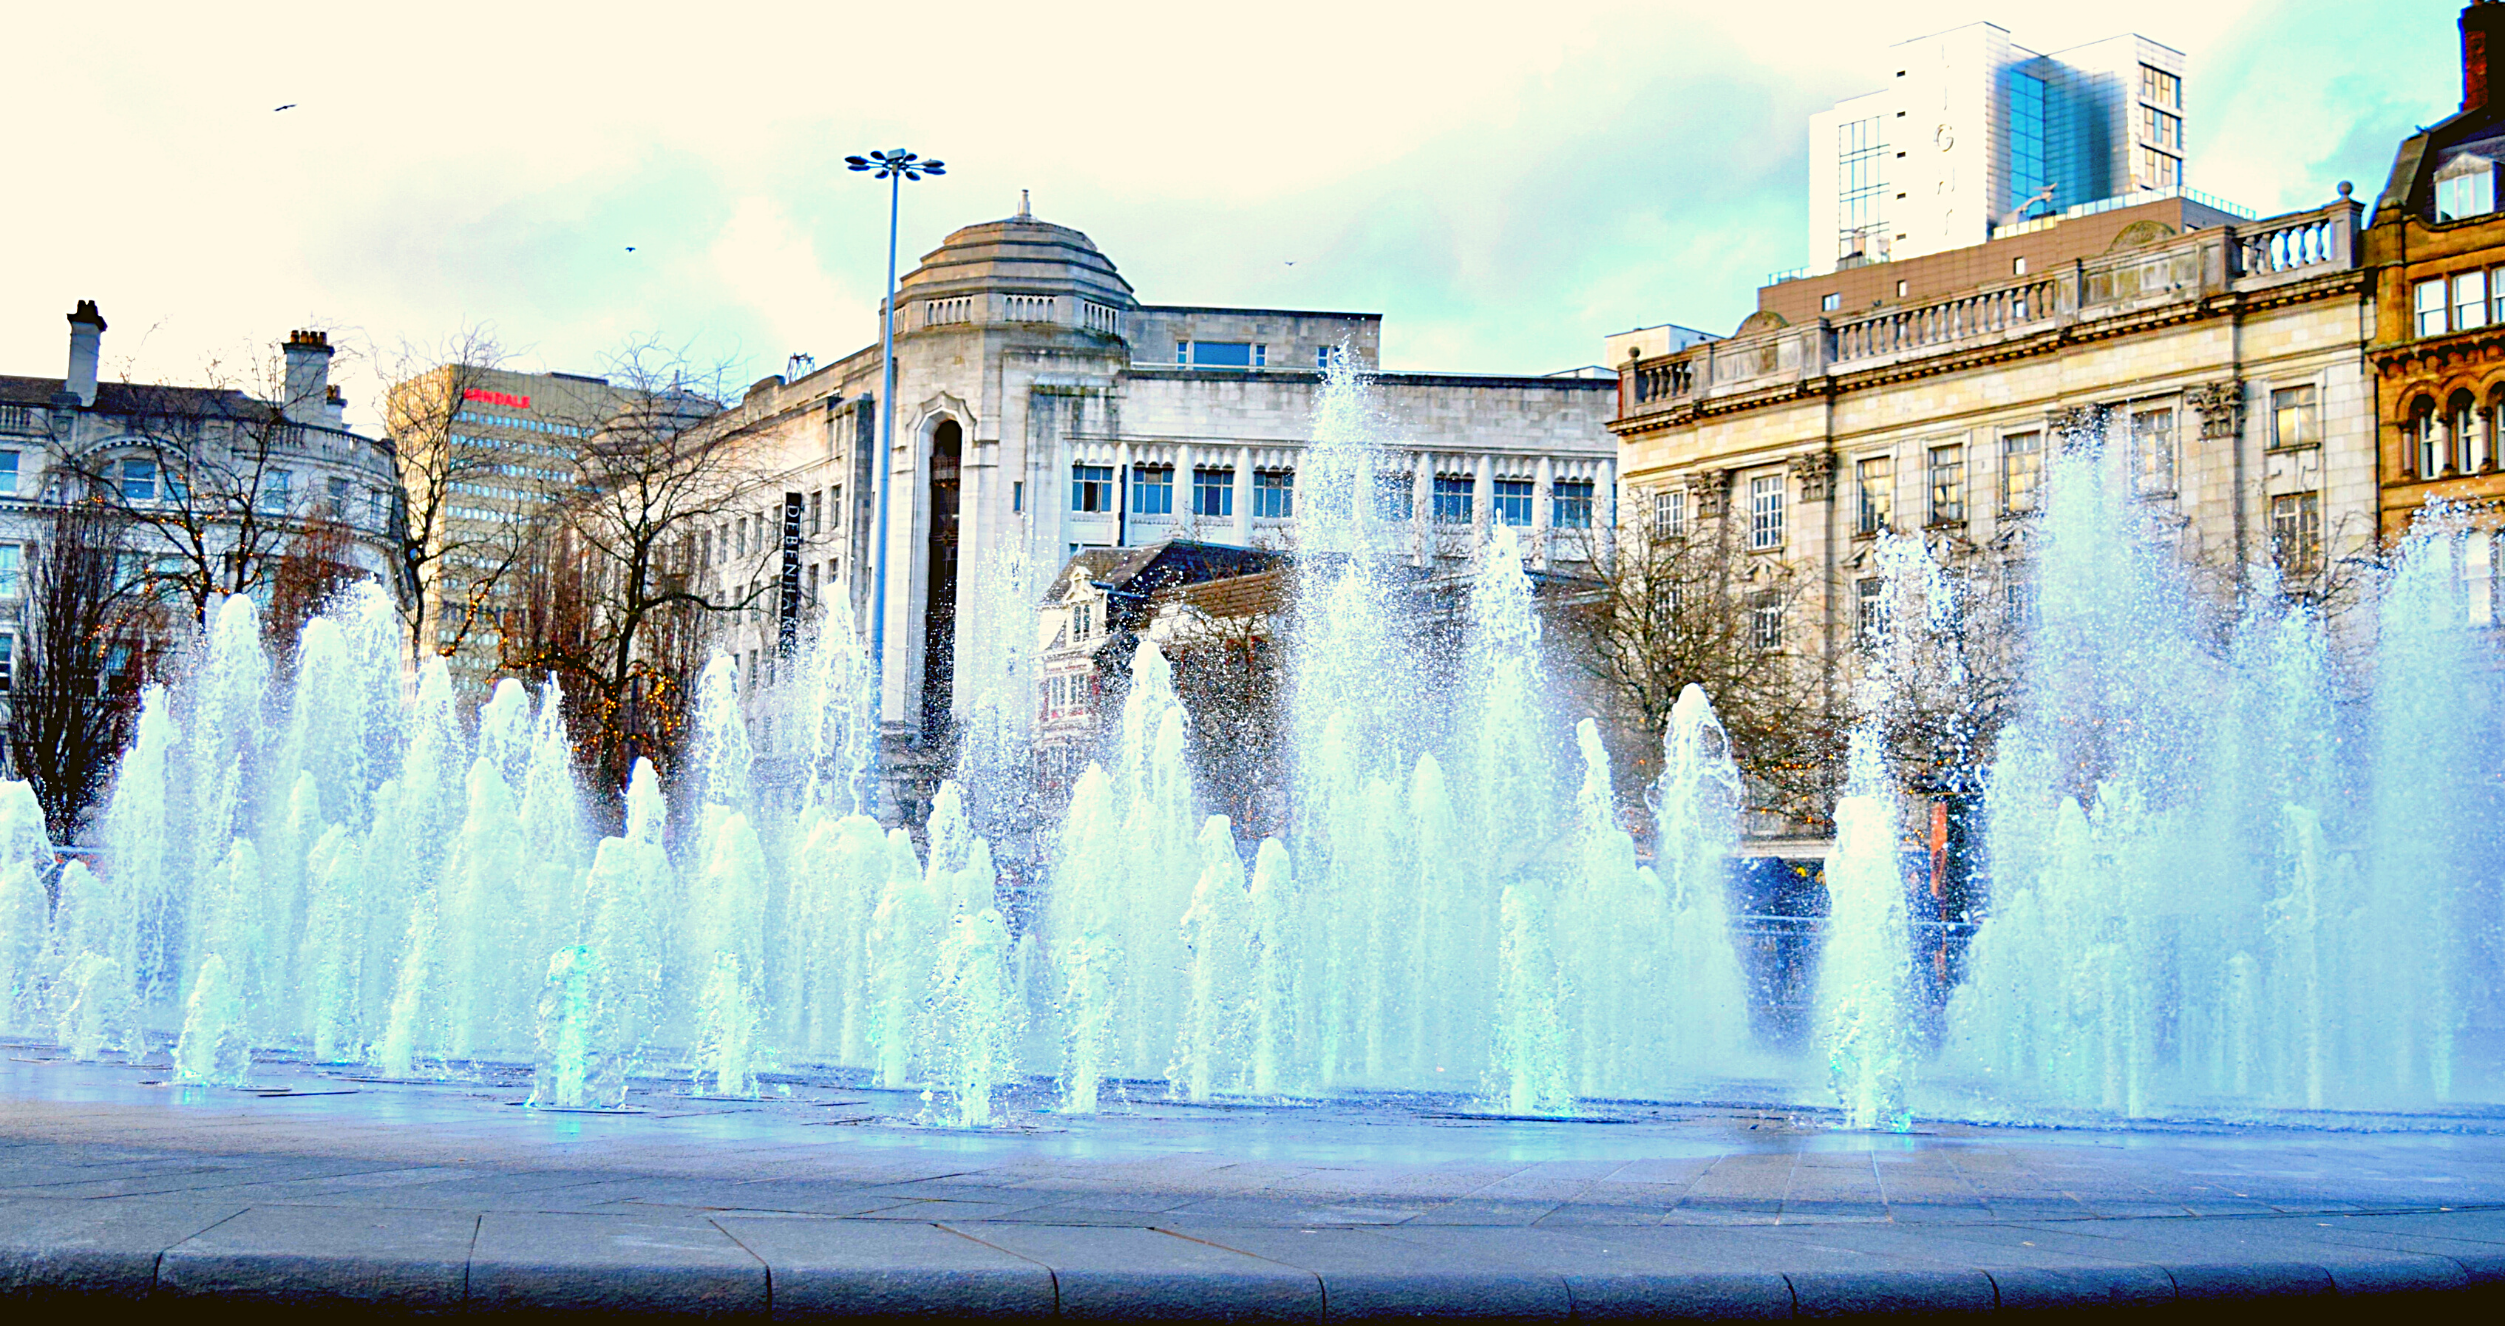 Fountains in Manchester